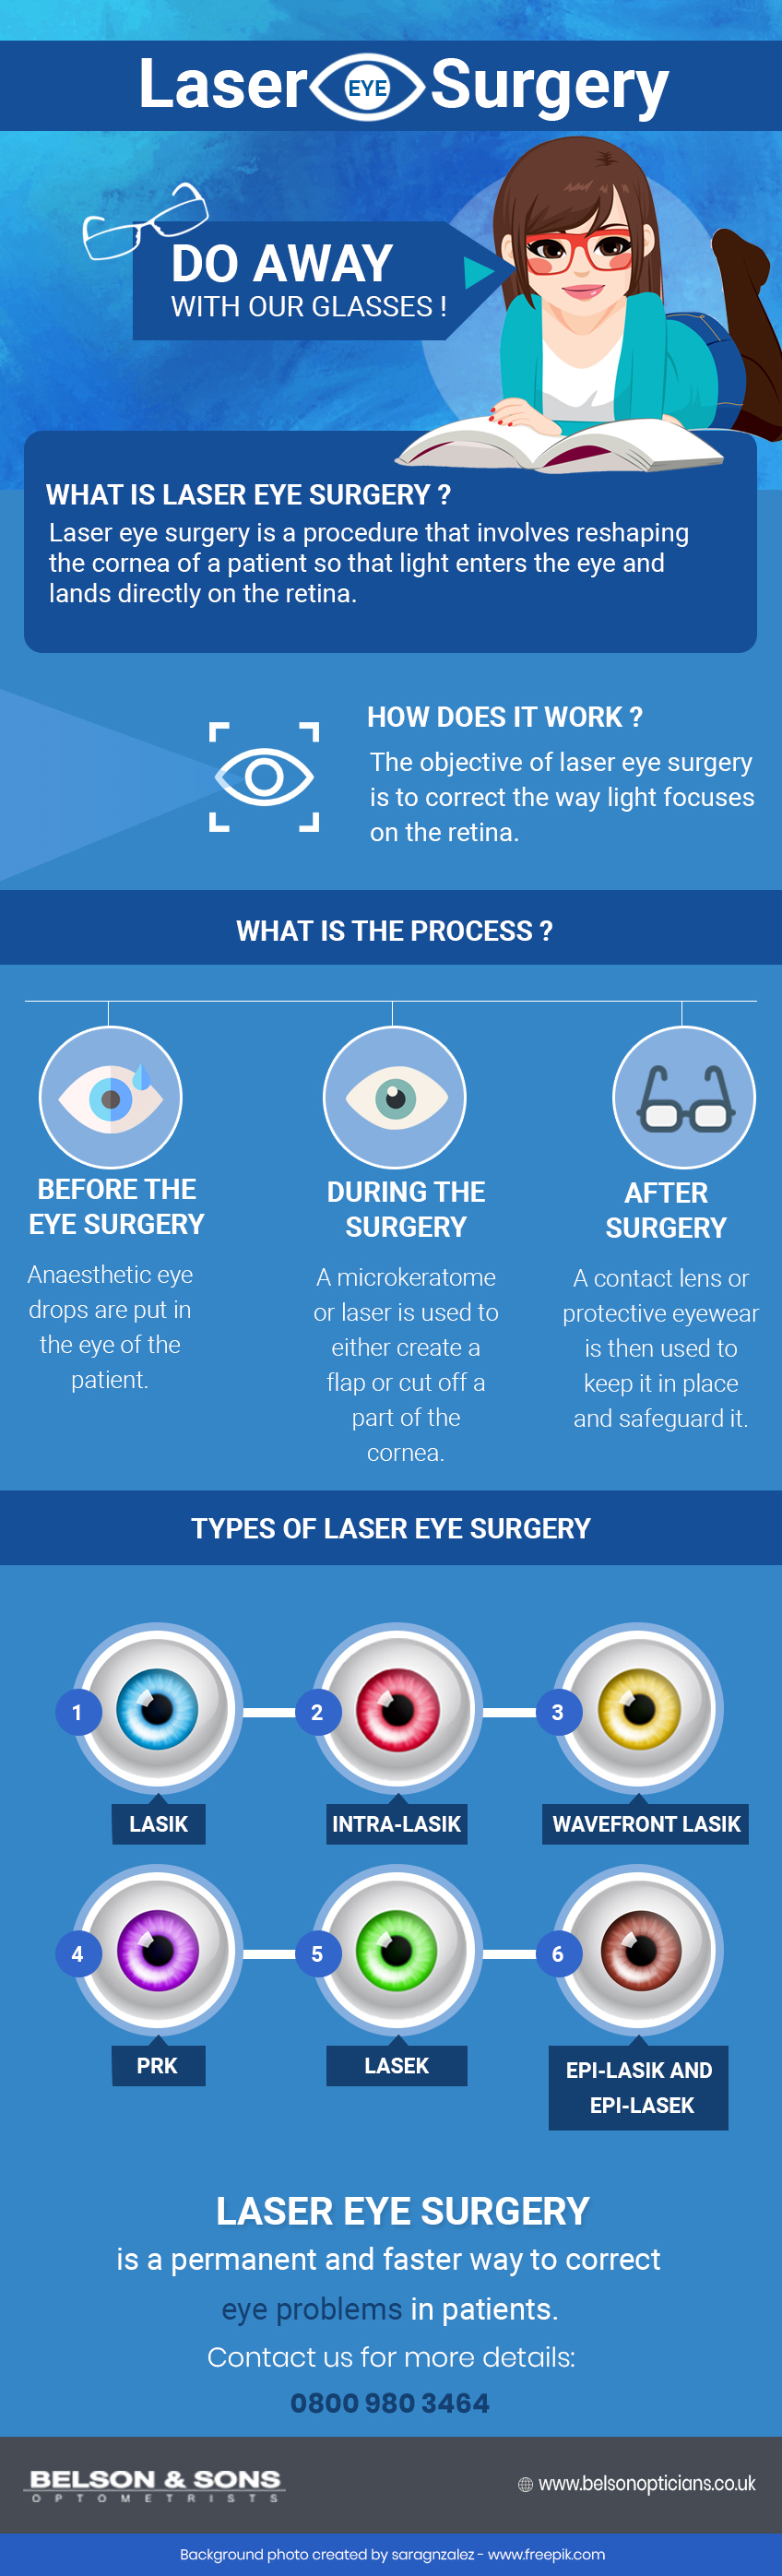 Laser Eye Surgery: Everything You Want to Know - Infographic